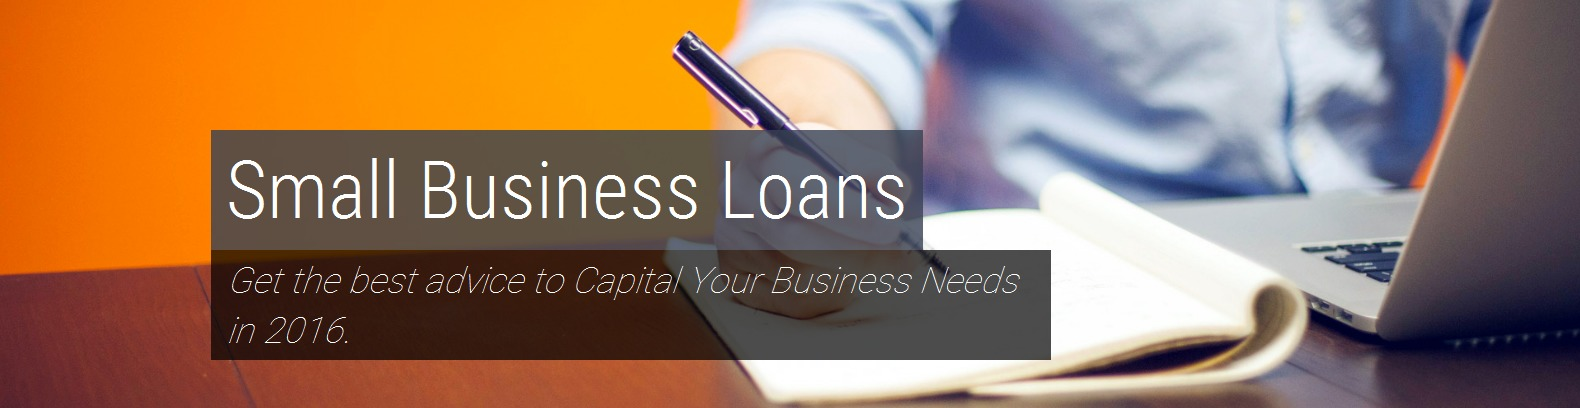 Small Business Lending Ecosystem 2016